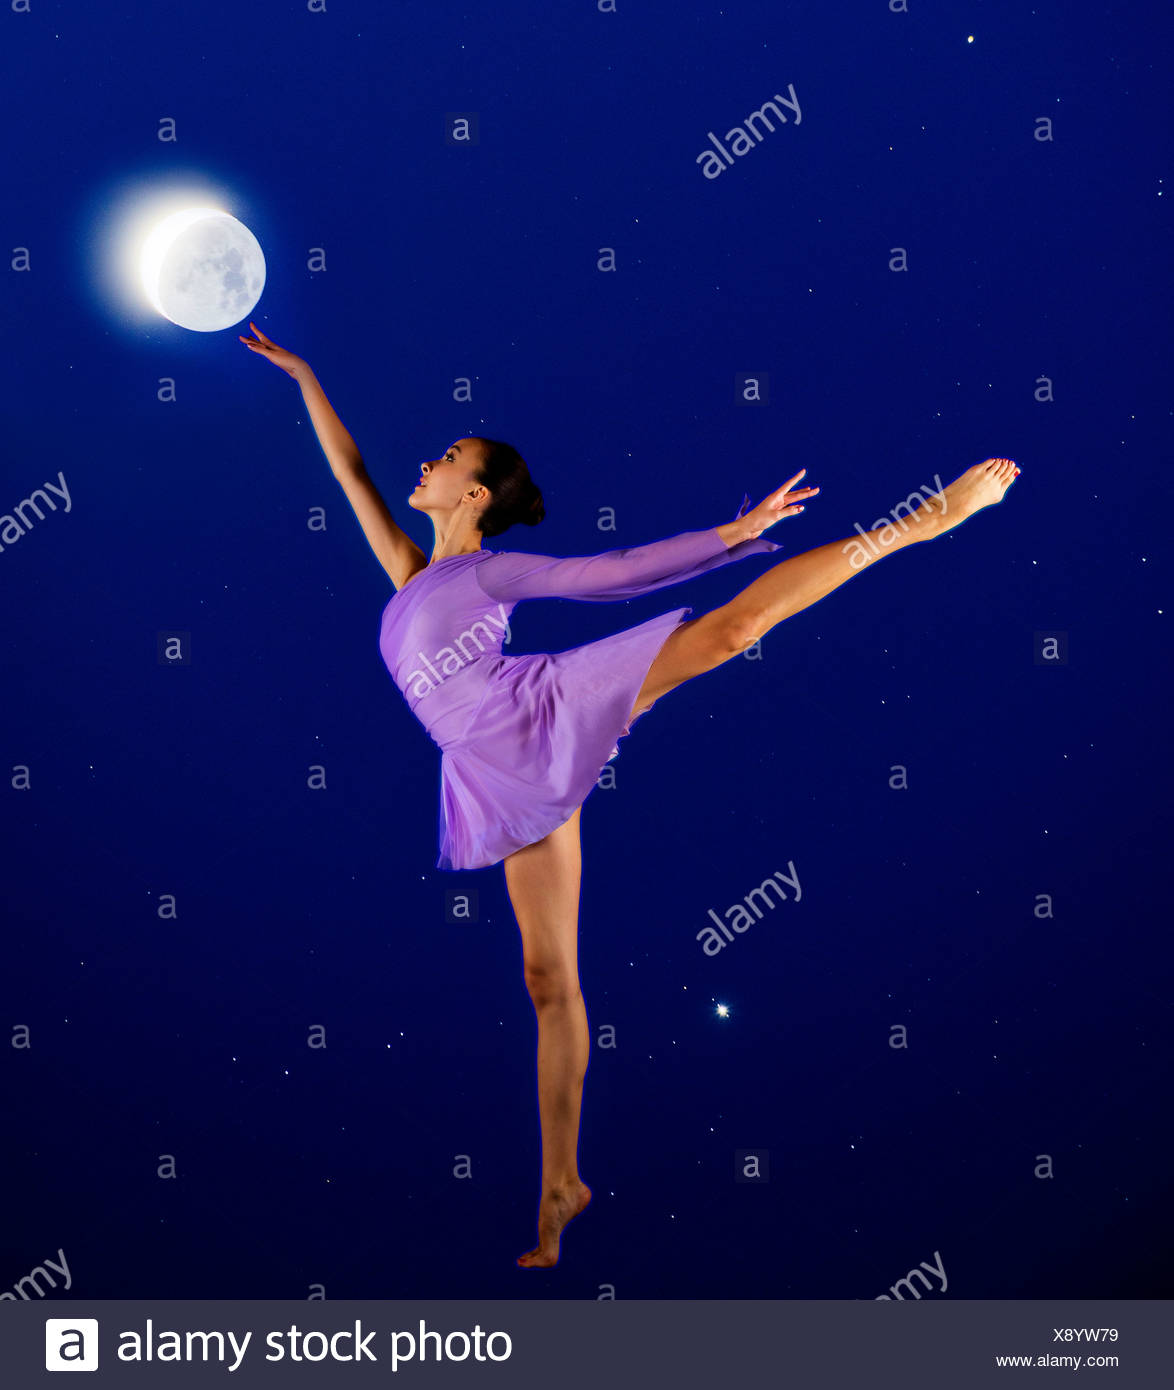 Ballerina reaching for the moon - Stock Image